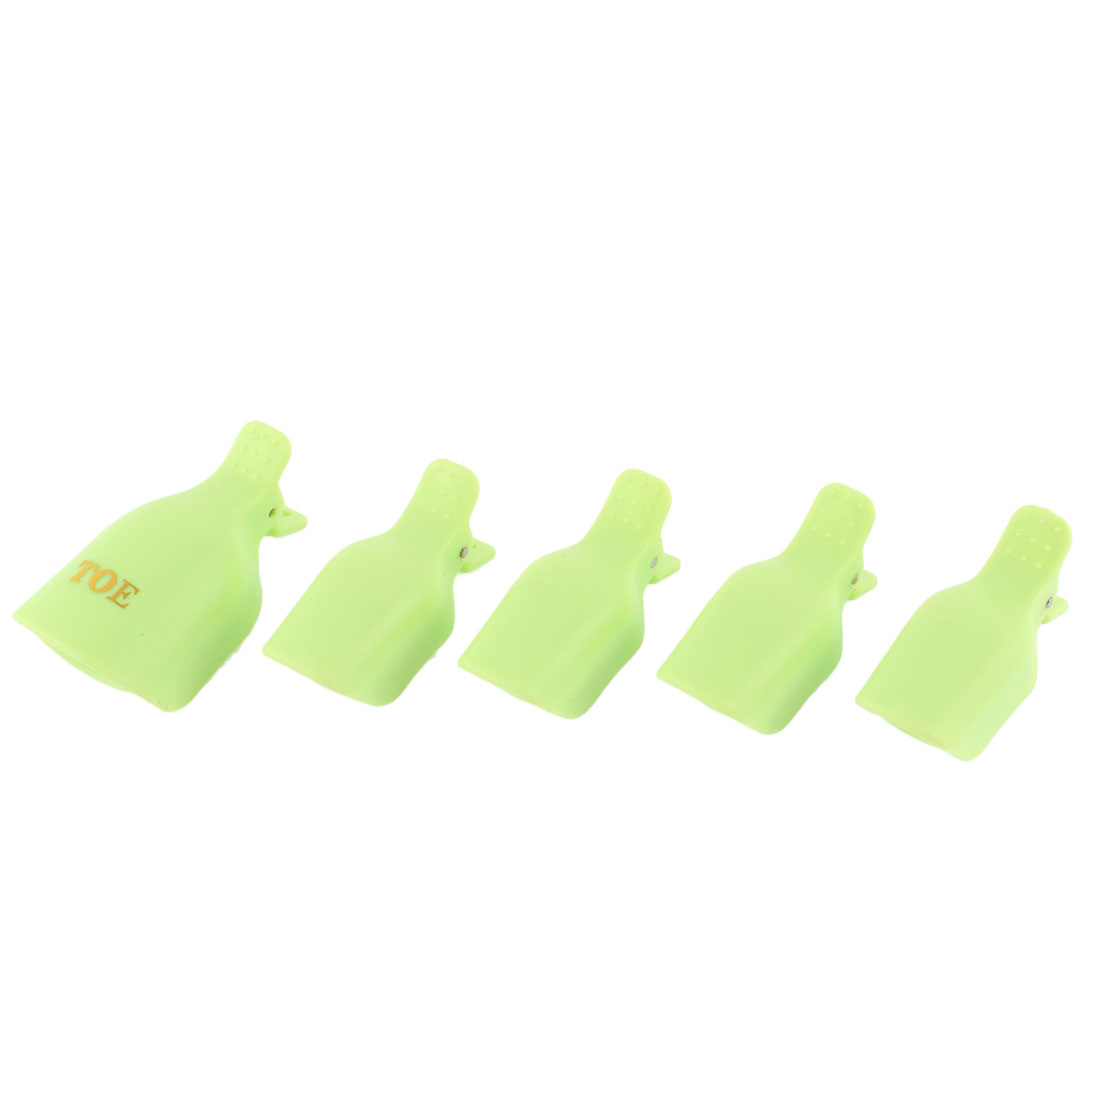 5 in 1 Reusable Green Plastic Nail Art Soak Off Clip Soakers Polish Remover Wrap Cleaner DIY Cap